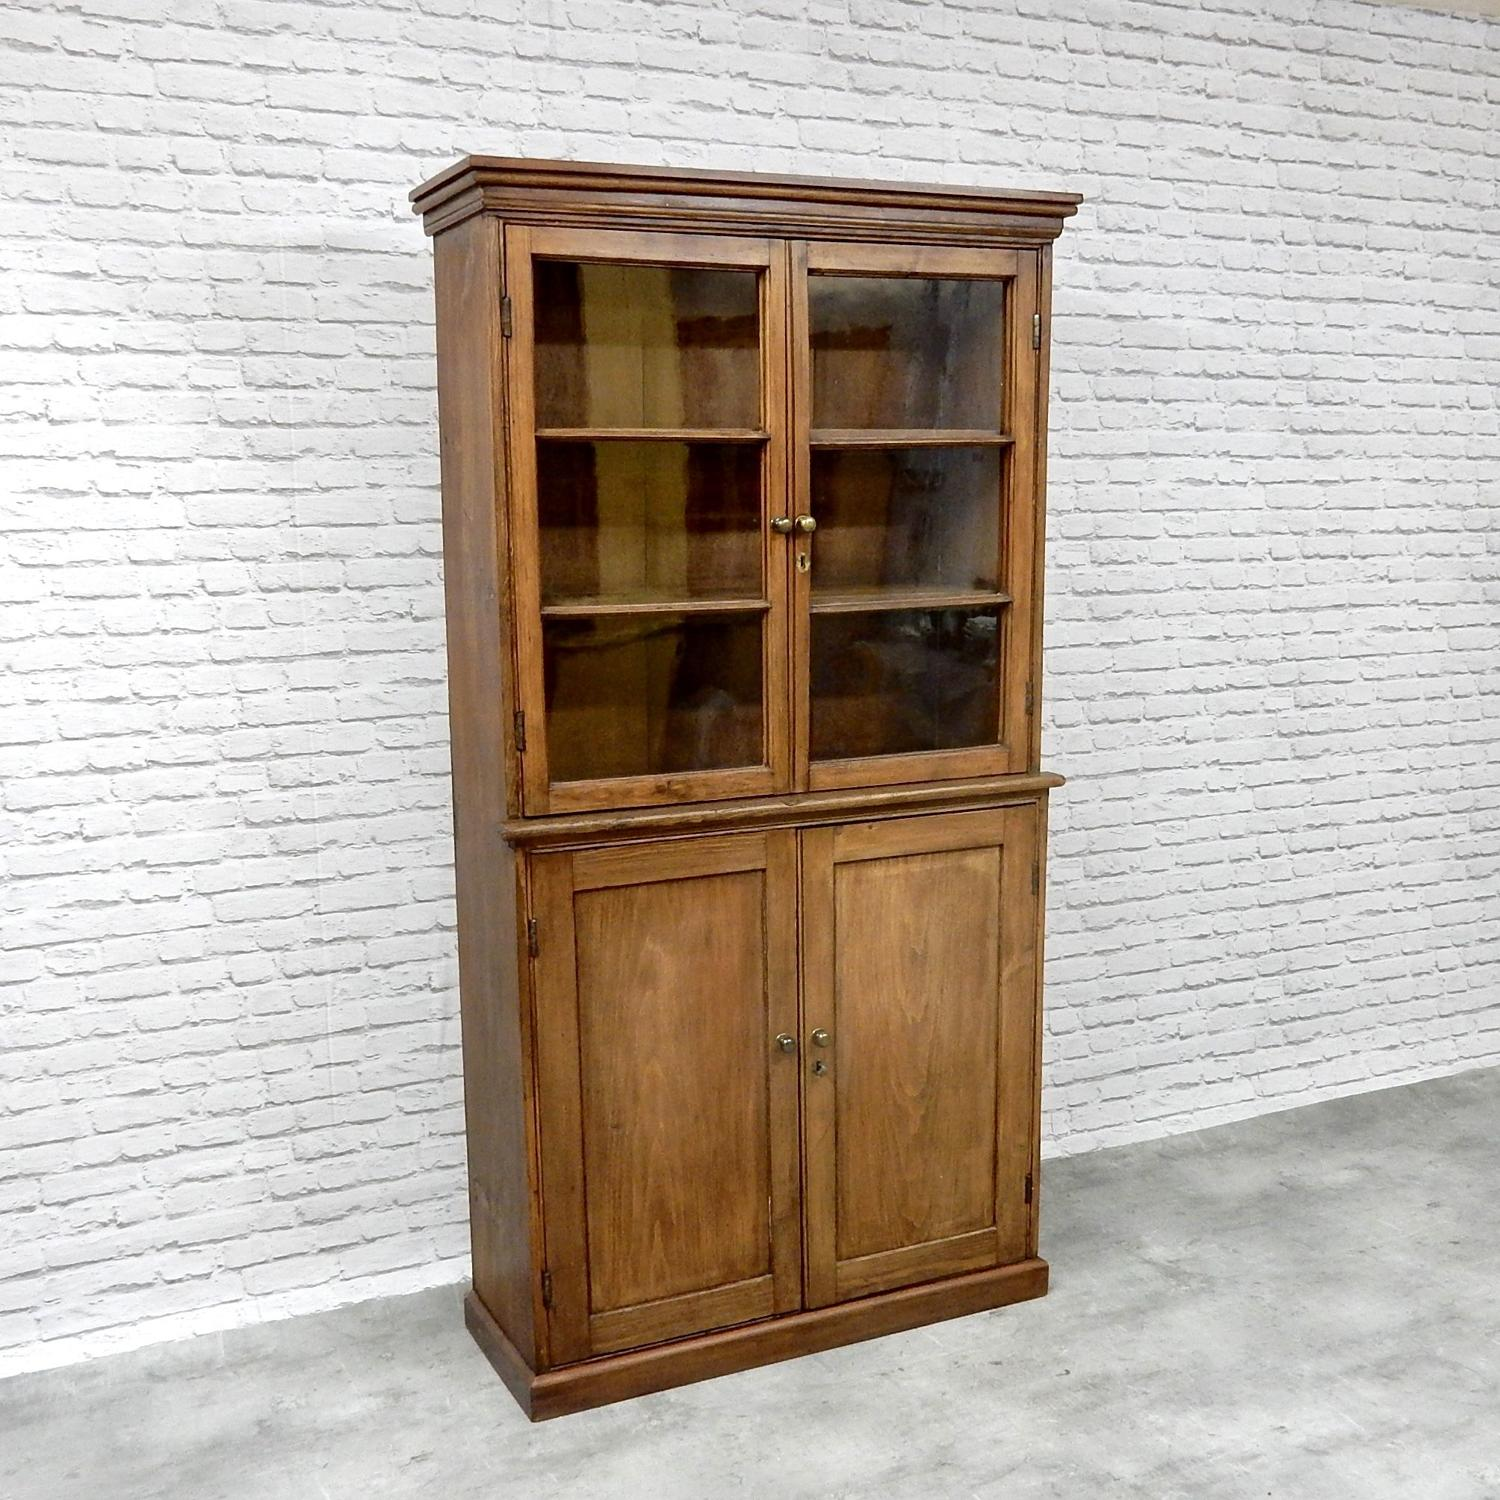 Victorian Glazed Bookcase